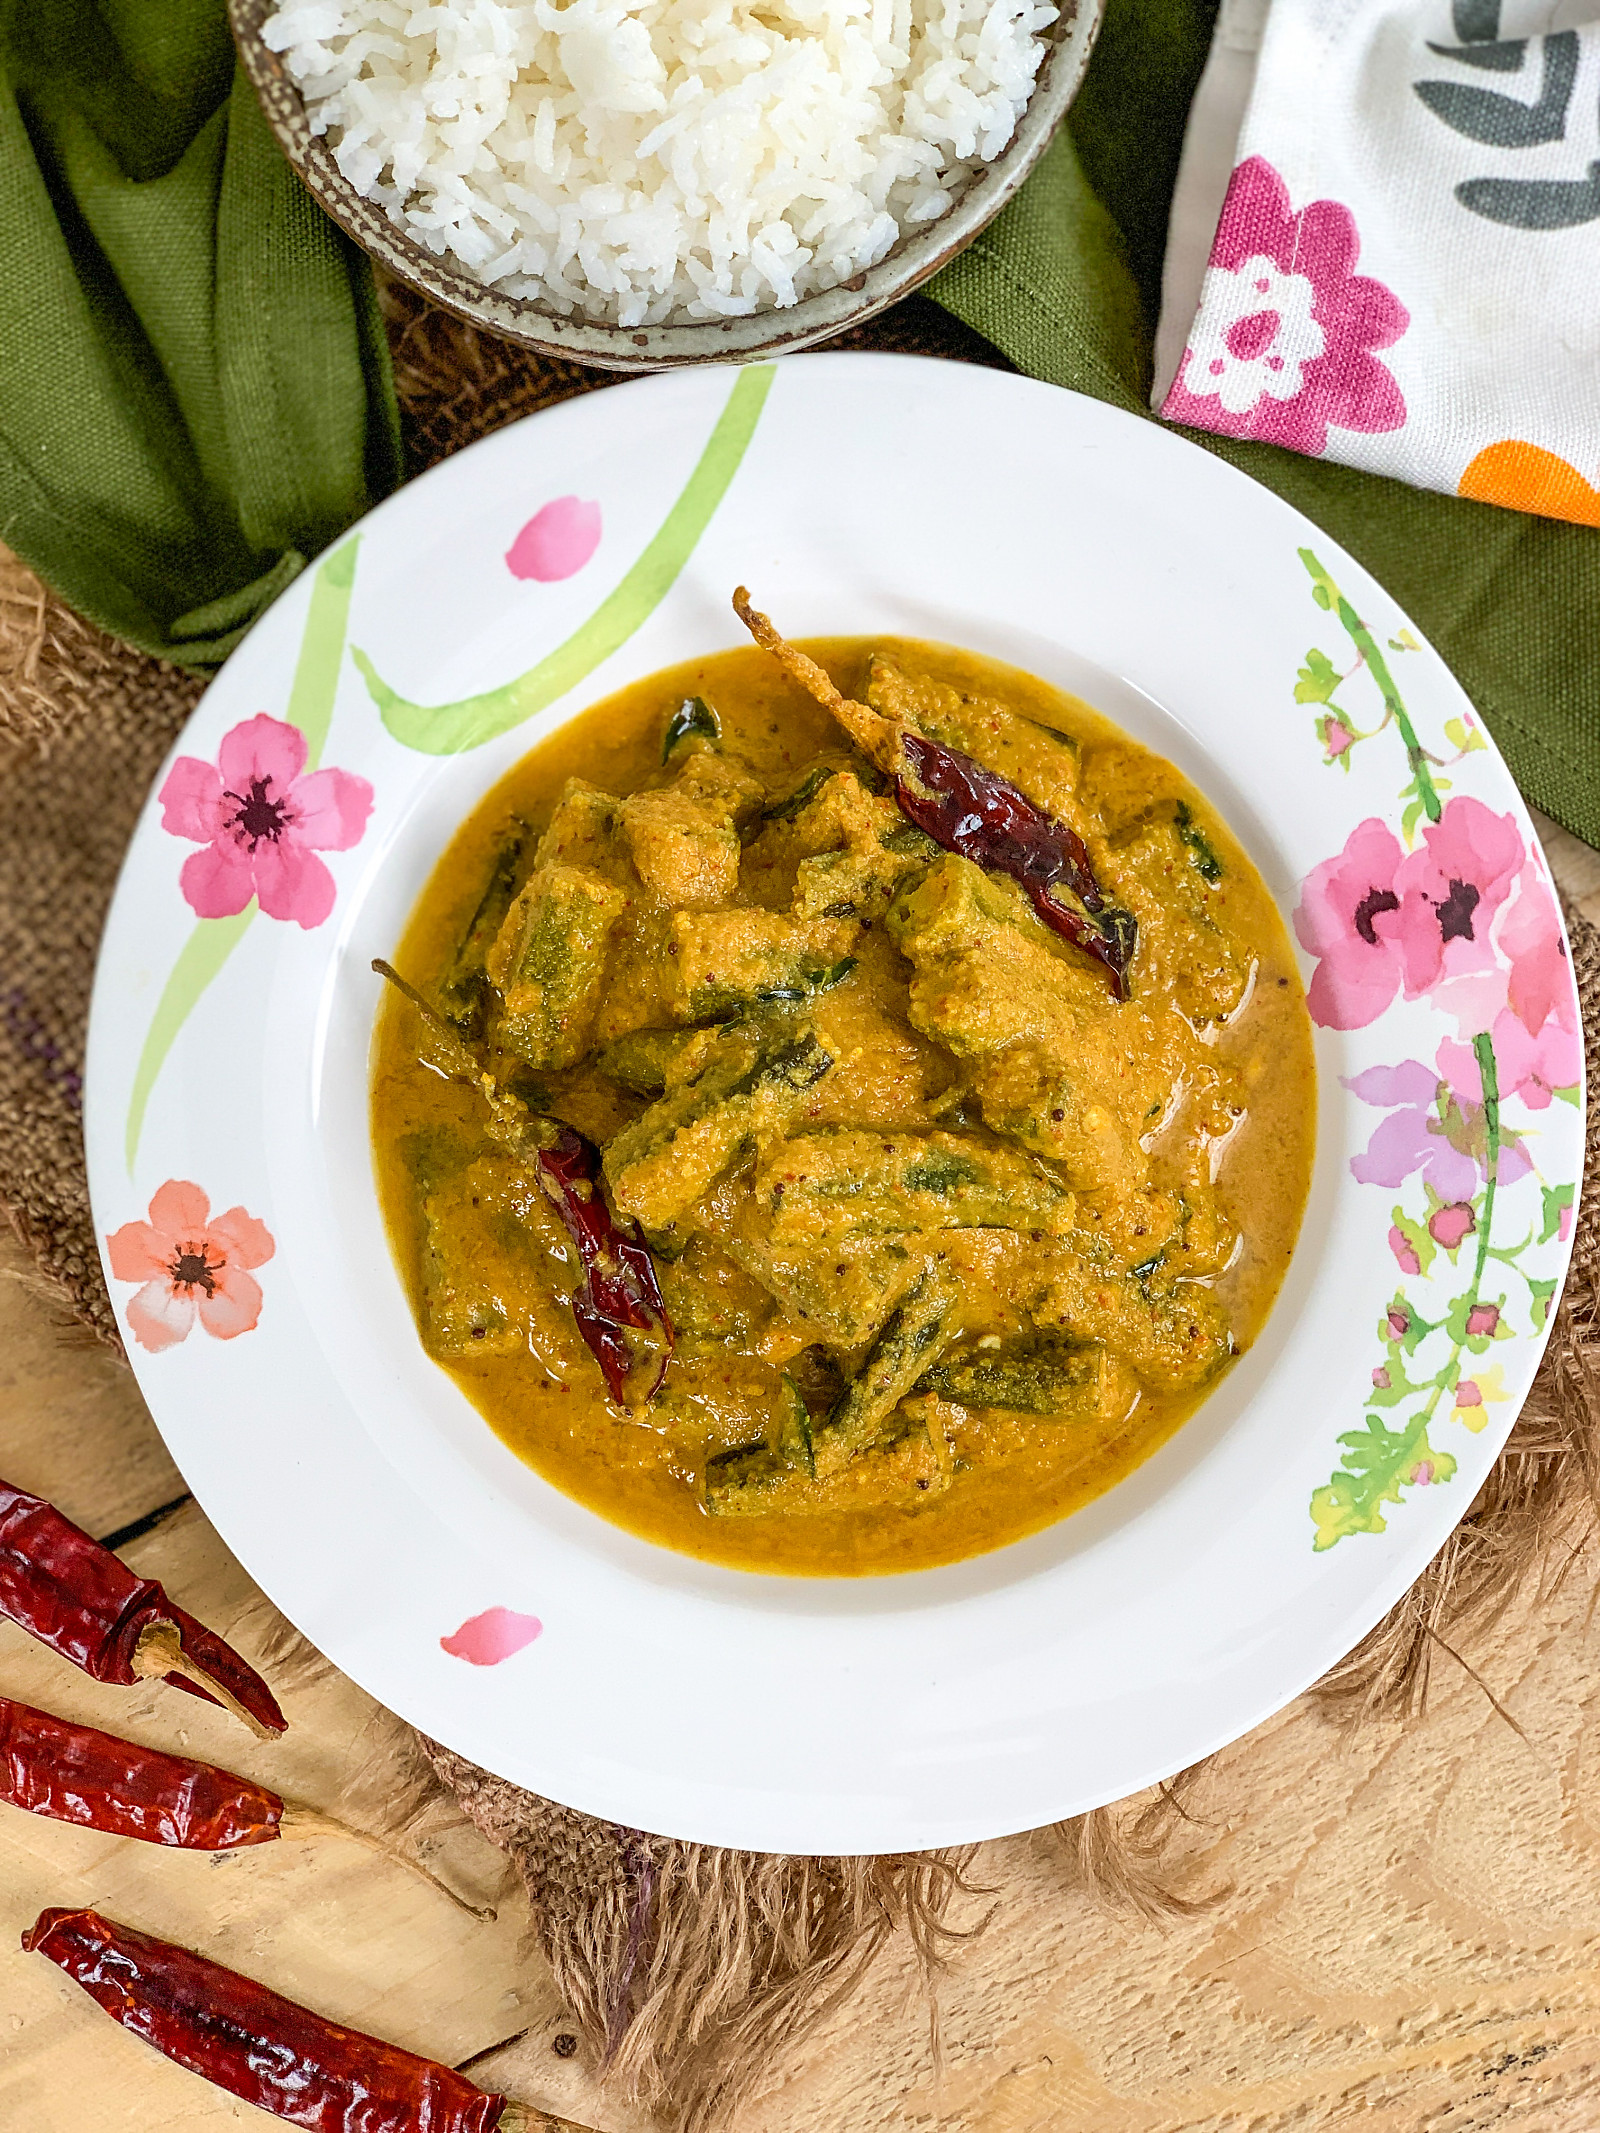 Bendekayi Puli Koddel Recipe - Lady Finger In Coconut Tamarind Curry